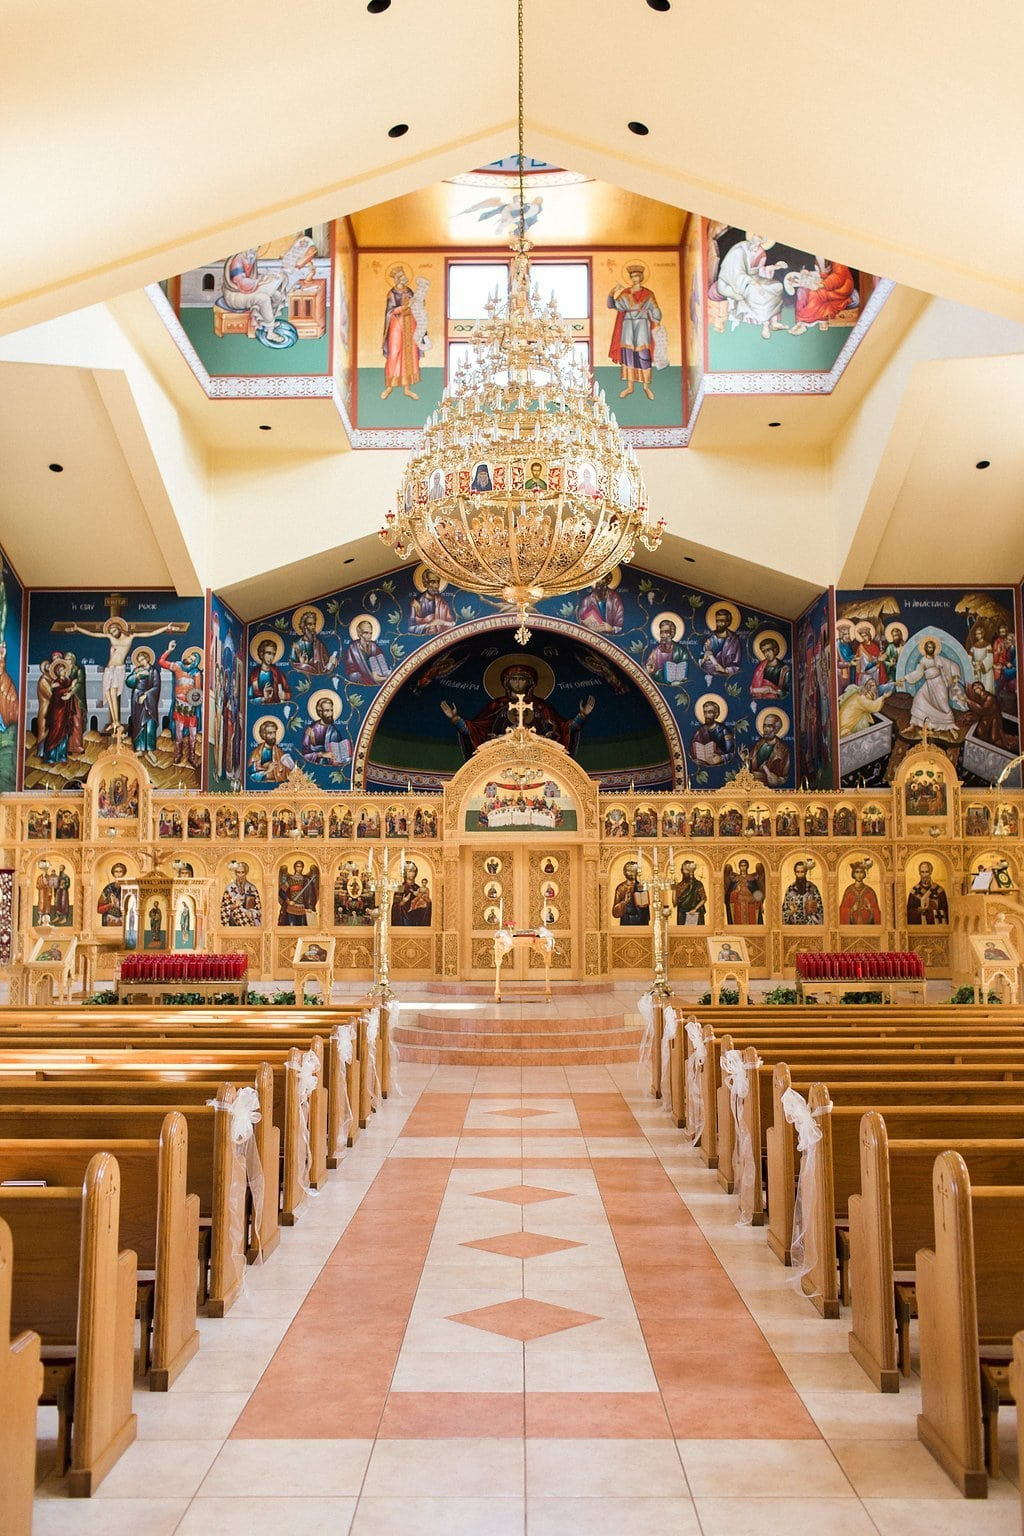 Inside All Saints Greek Orthodox Church painted walls and ceiling